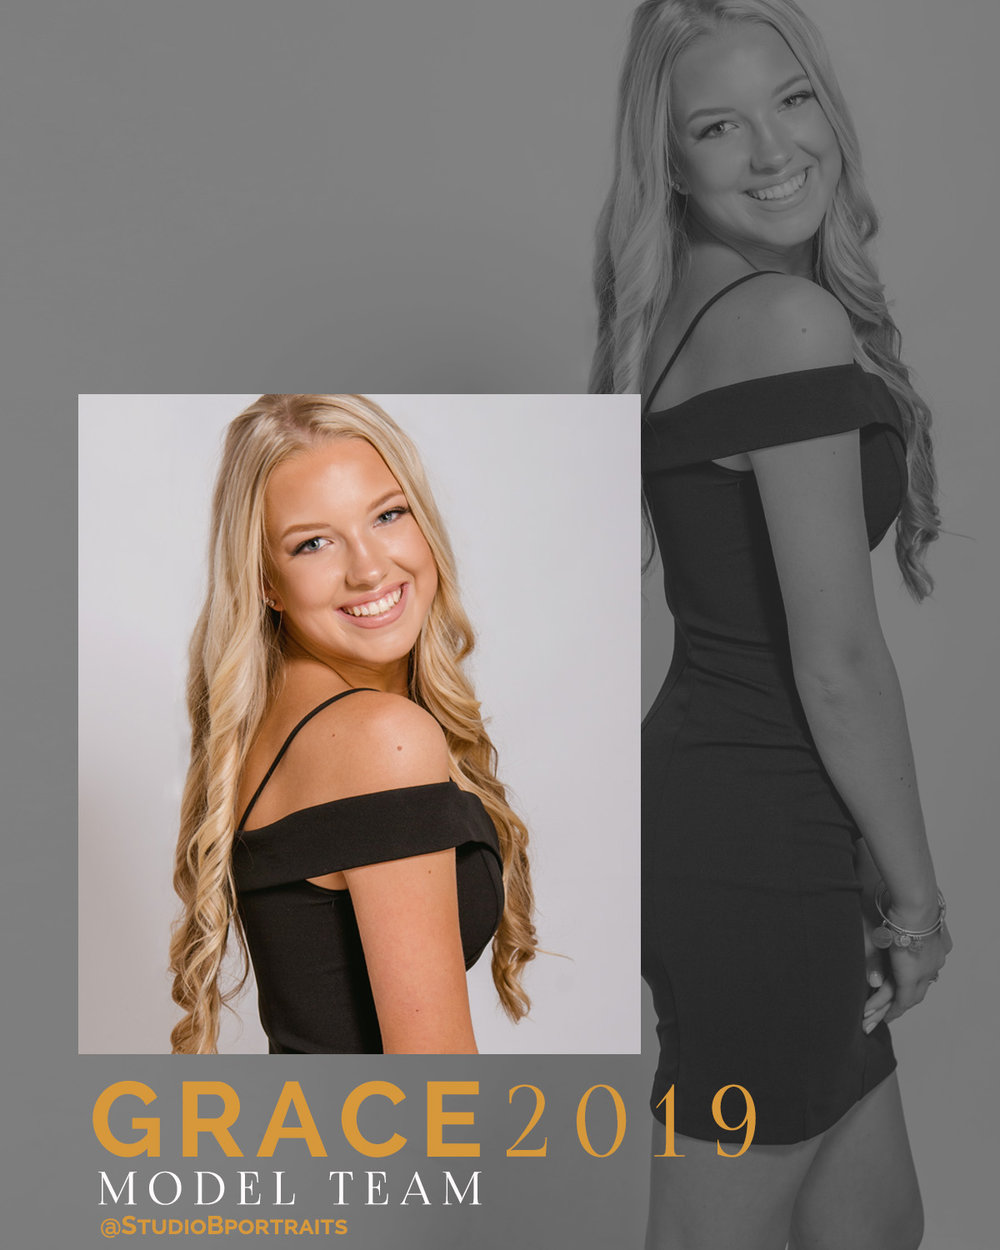 Introducing Grace.jpg